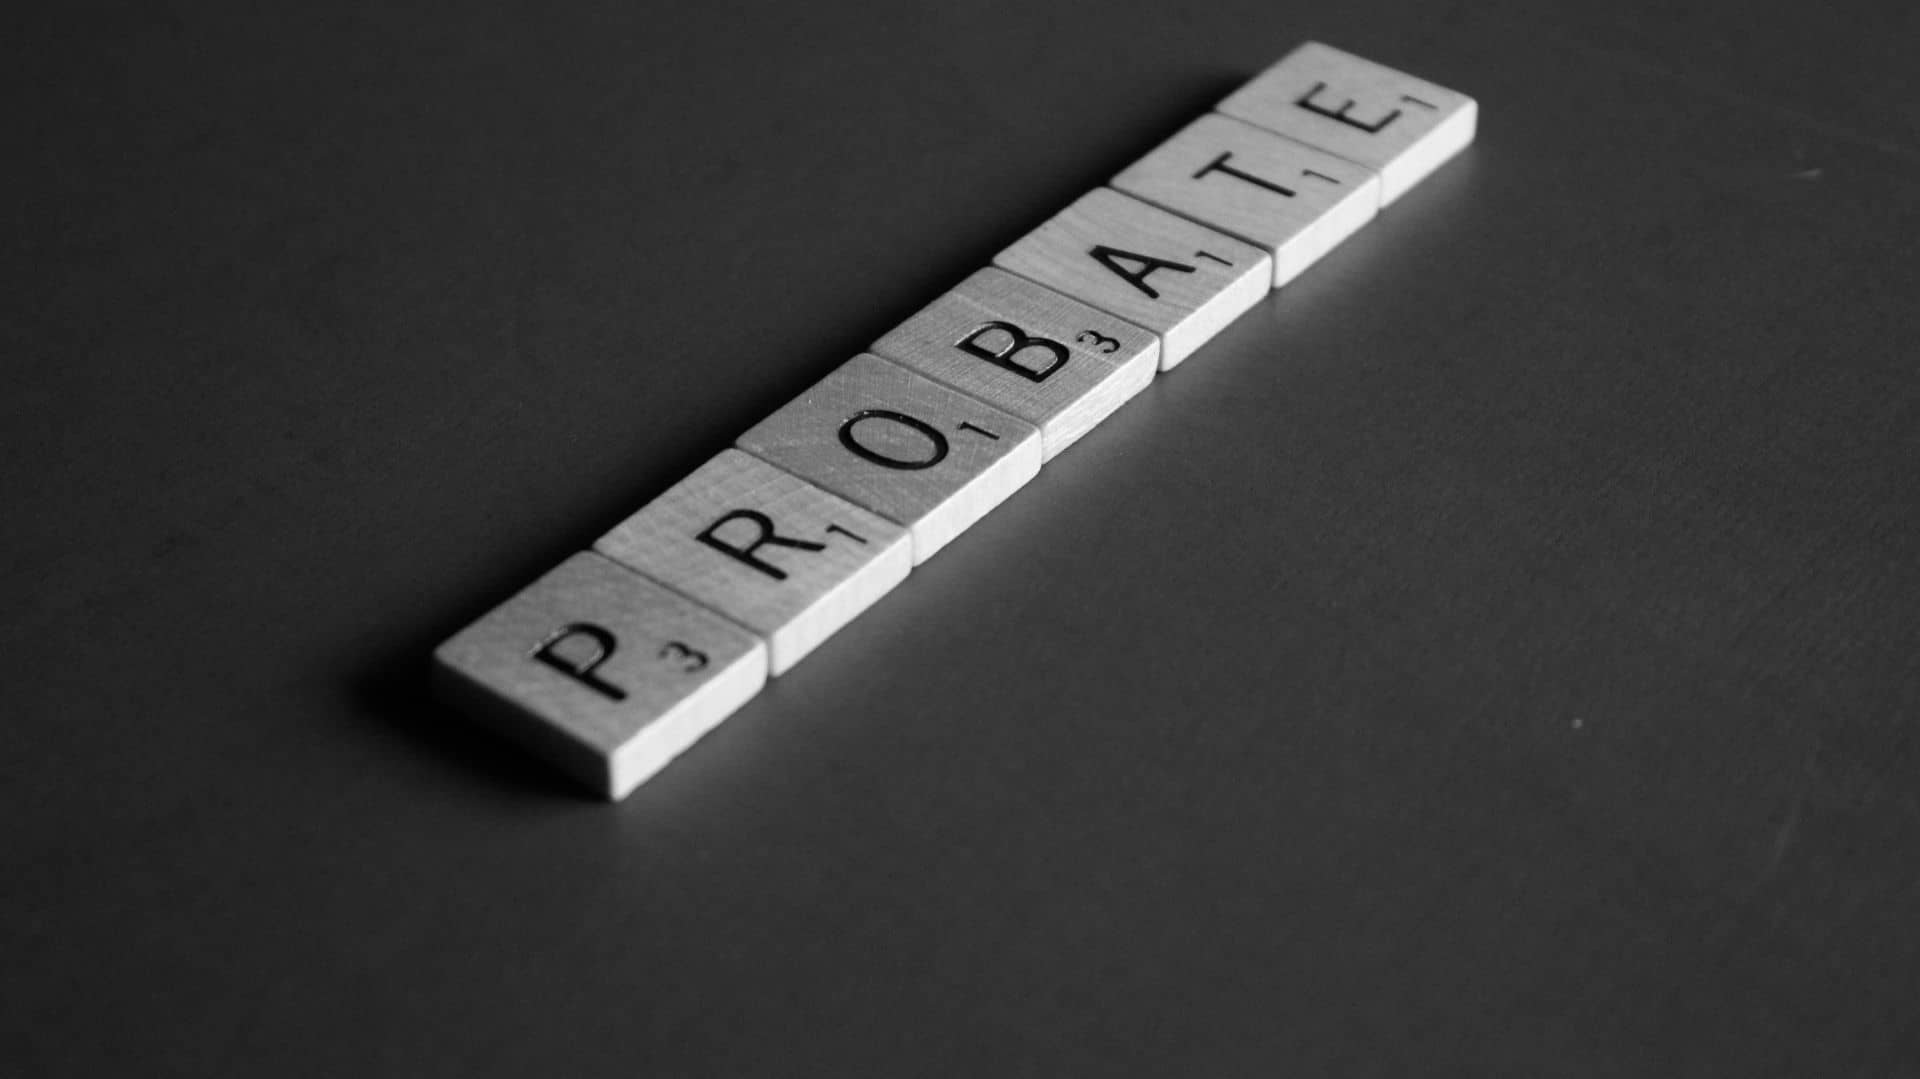 Probation is Possible